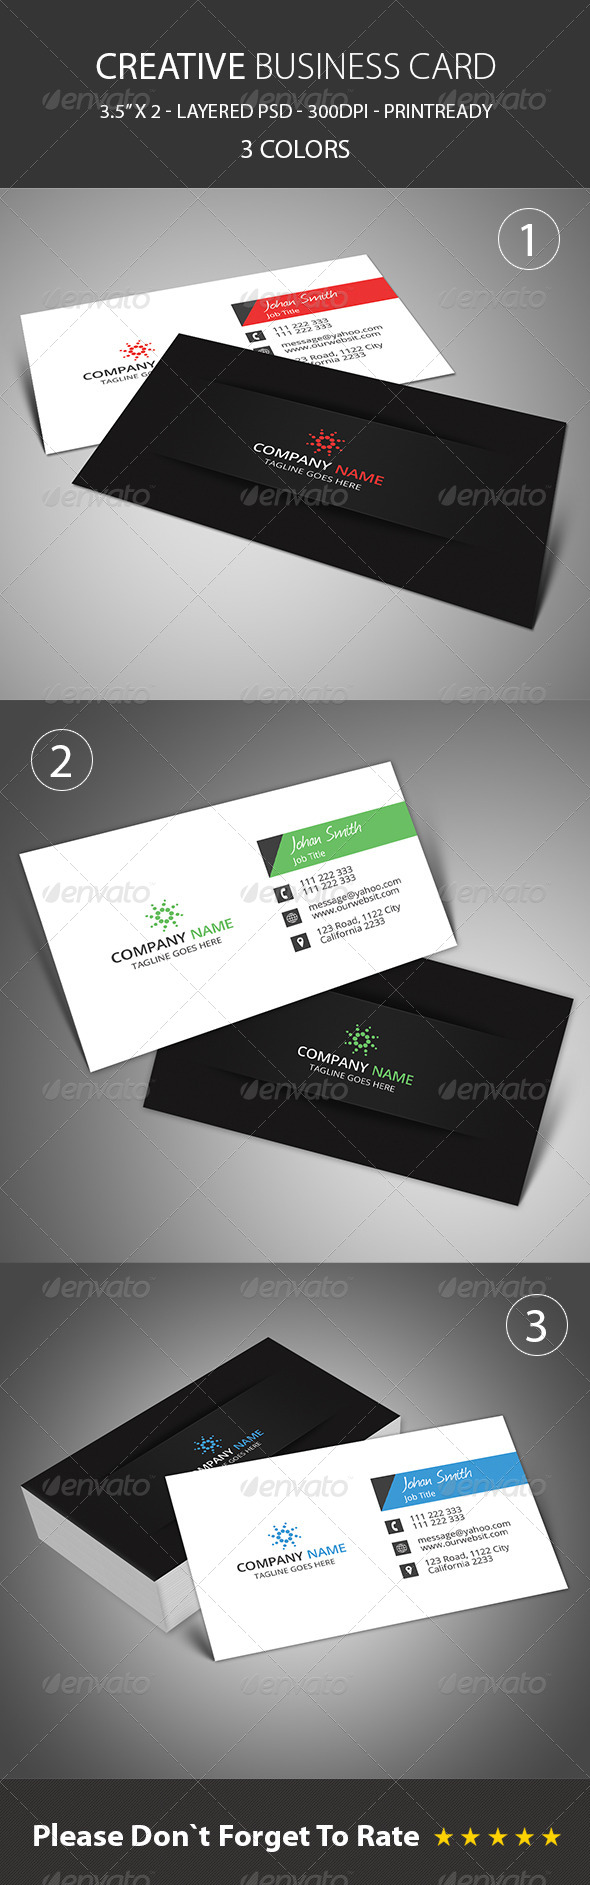 GraphicRiver Creative Business Card 8102296